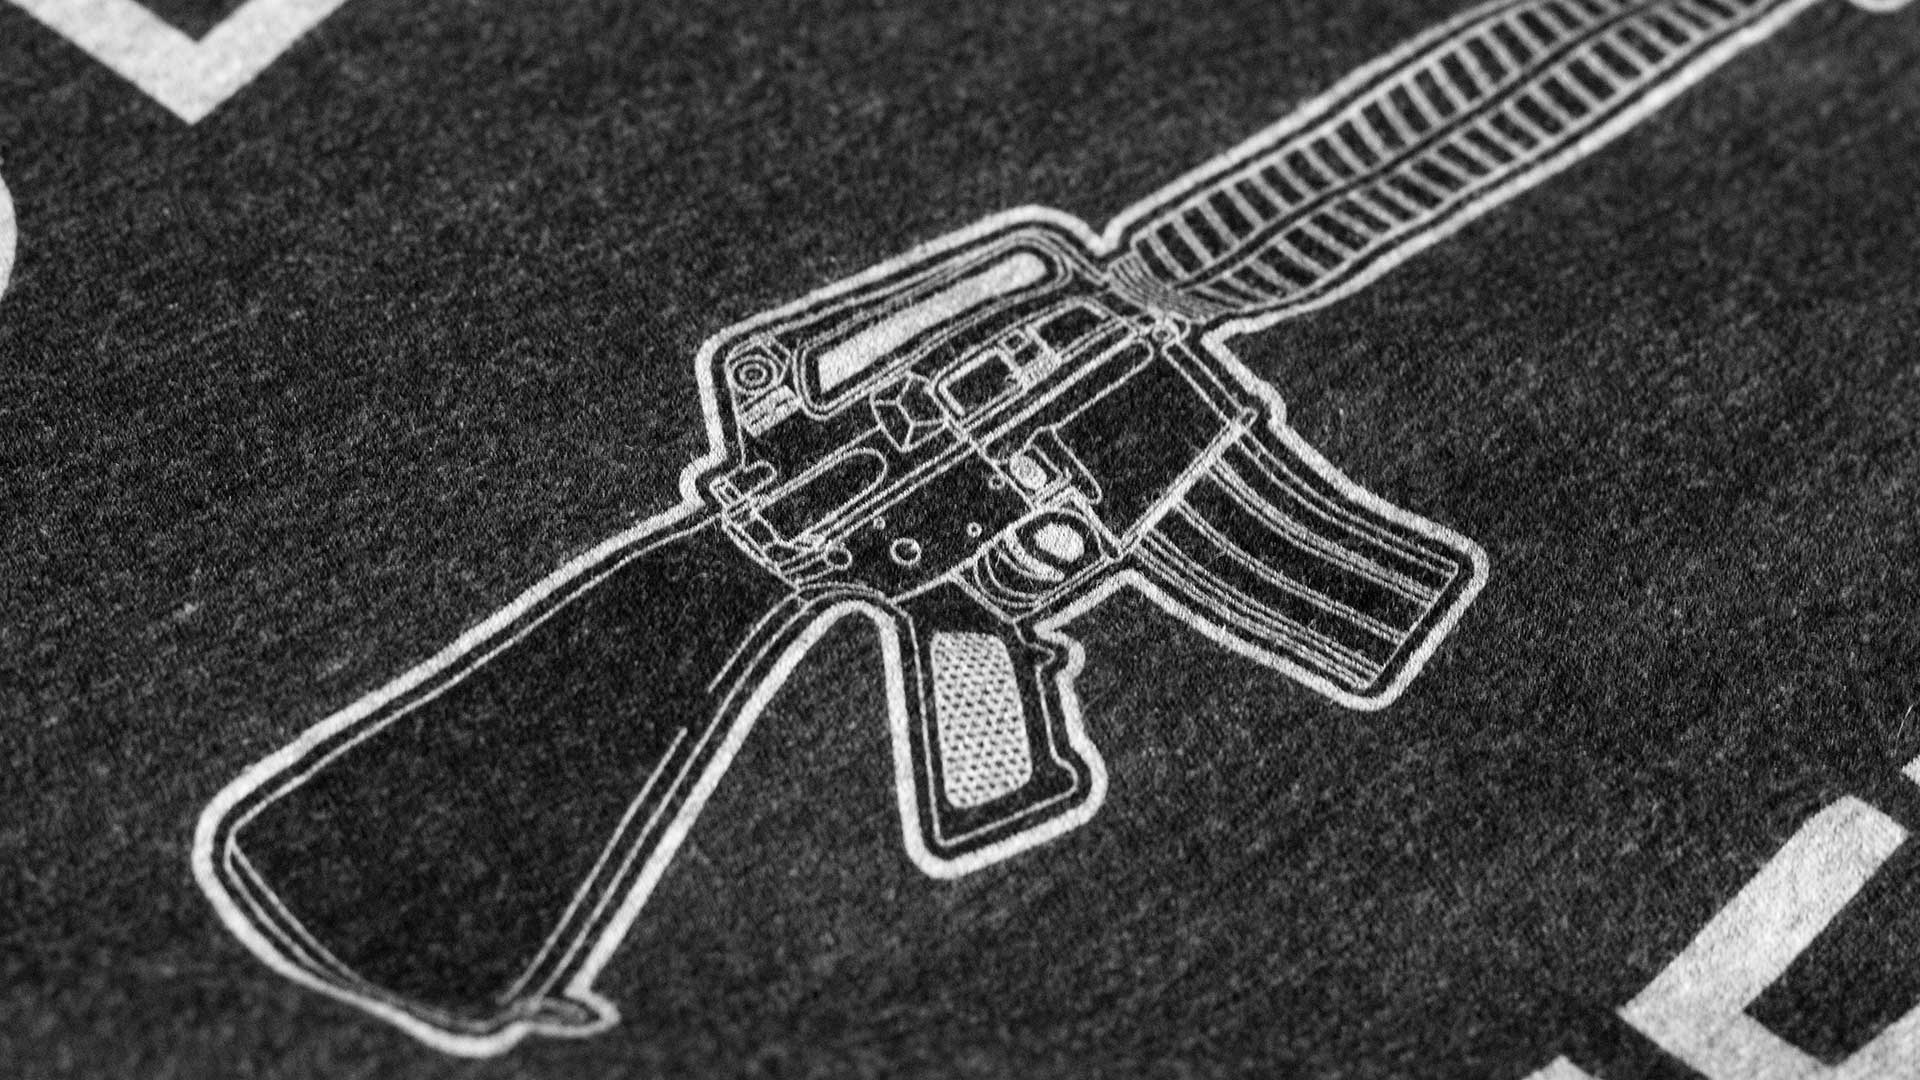 Defend Freedom AR-15 T-Shirt Detail 2